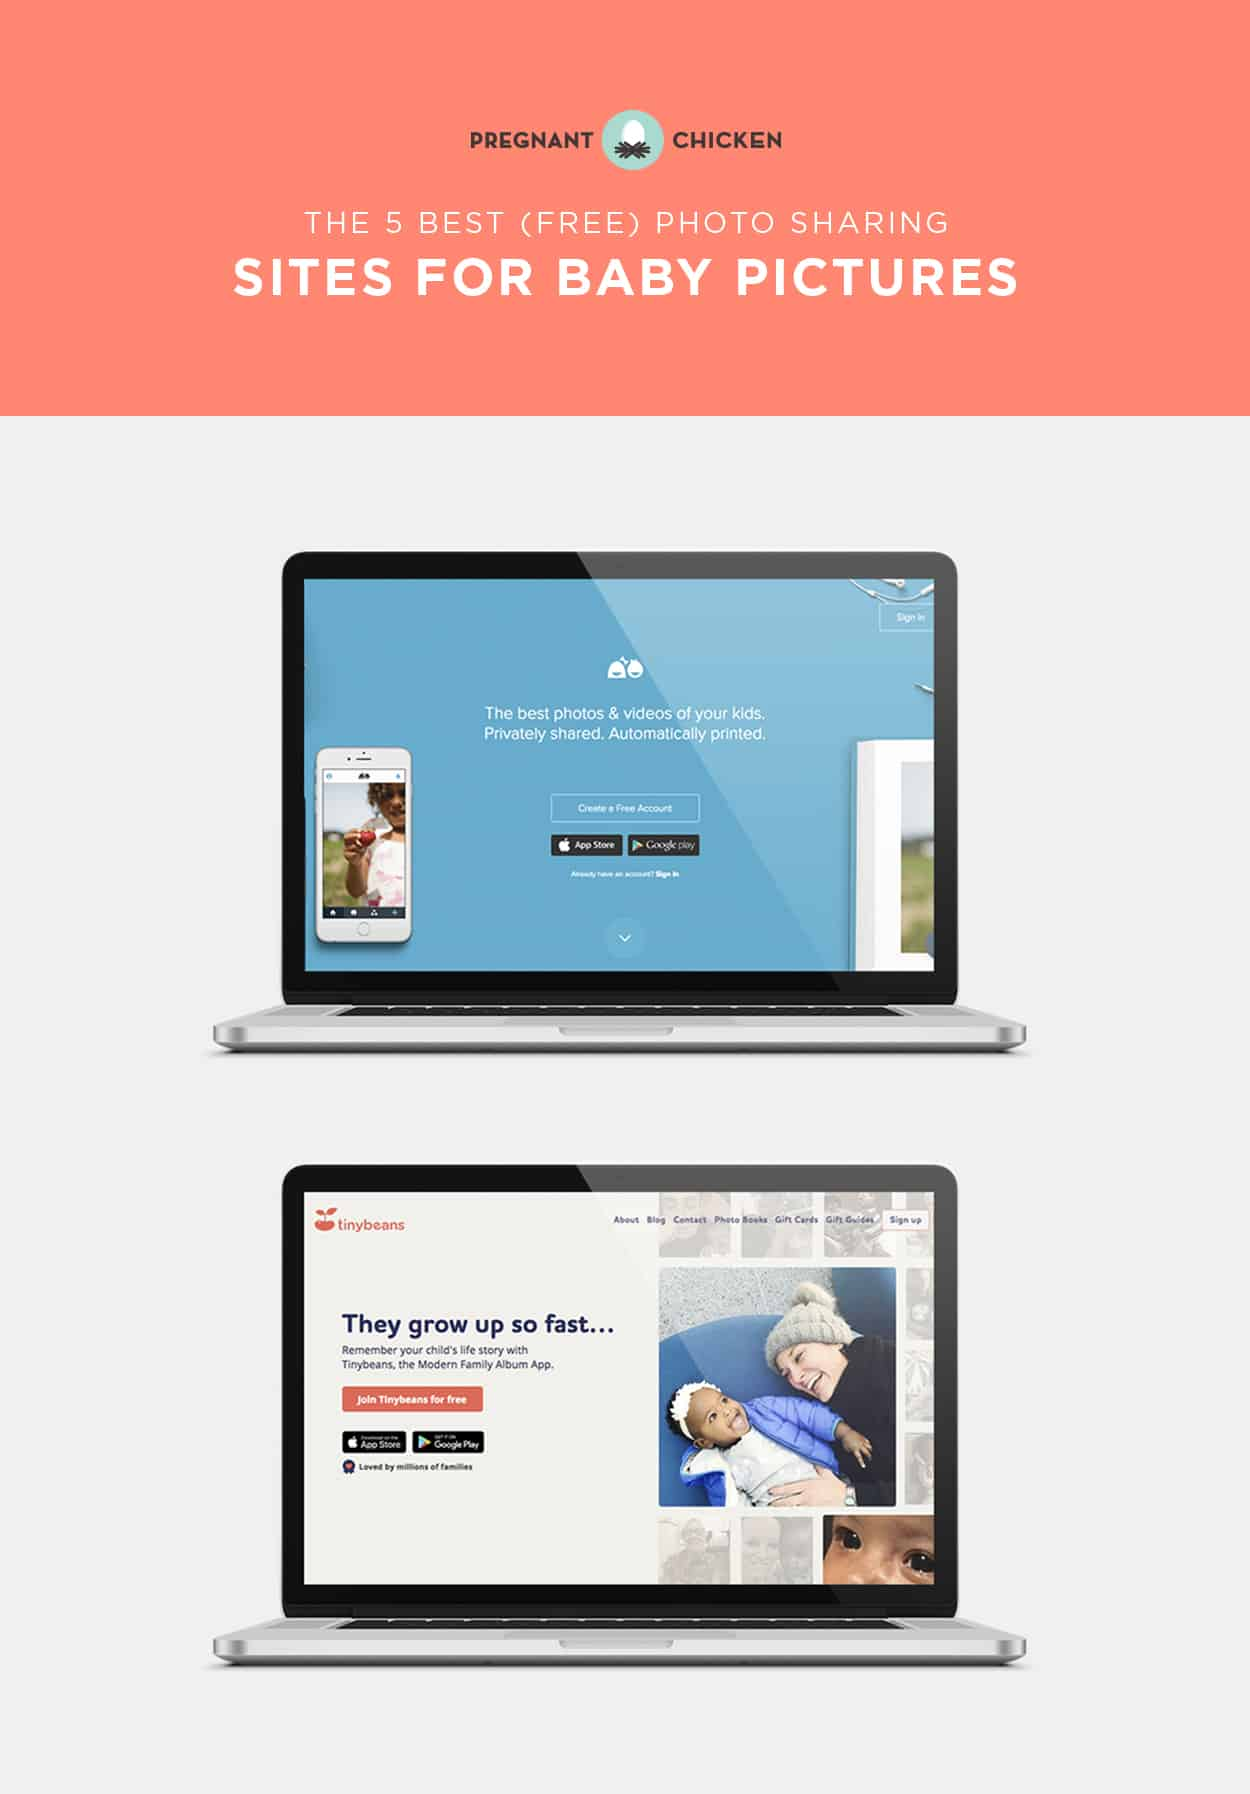 The 5 Best (Free) Photo Sharing Sites for Baby Pictures